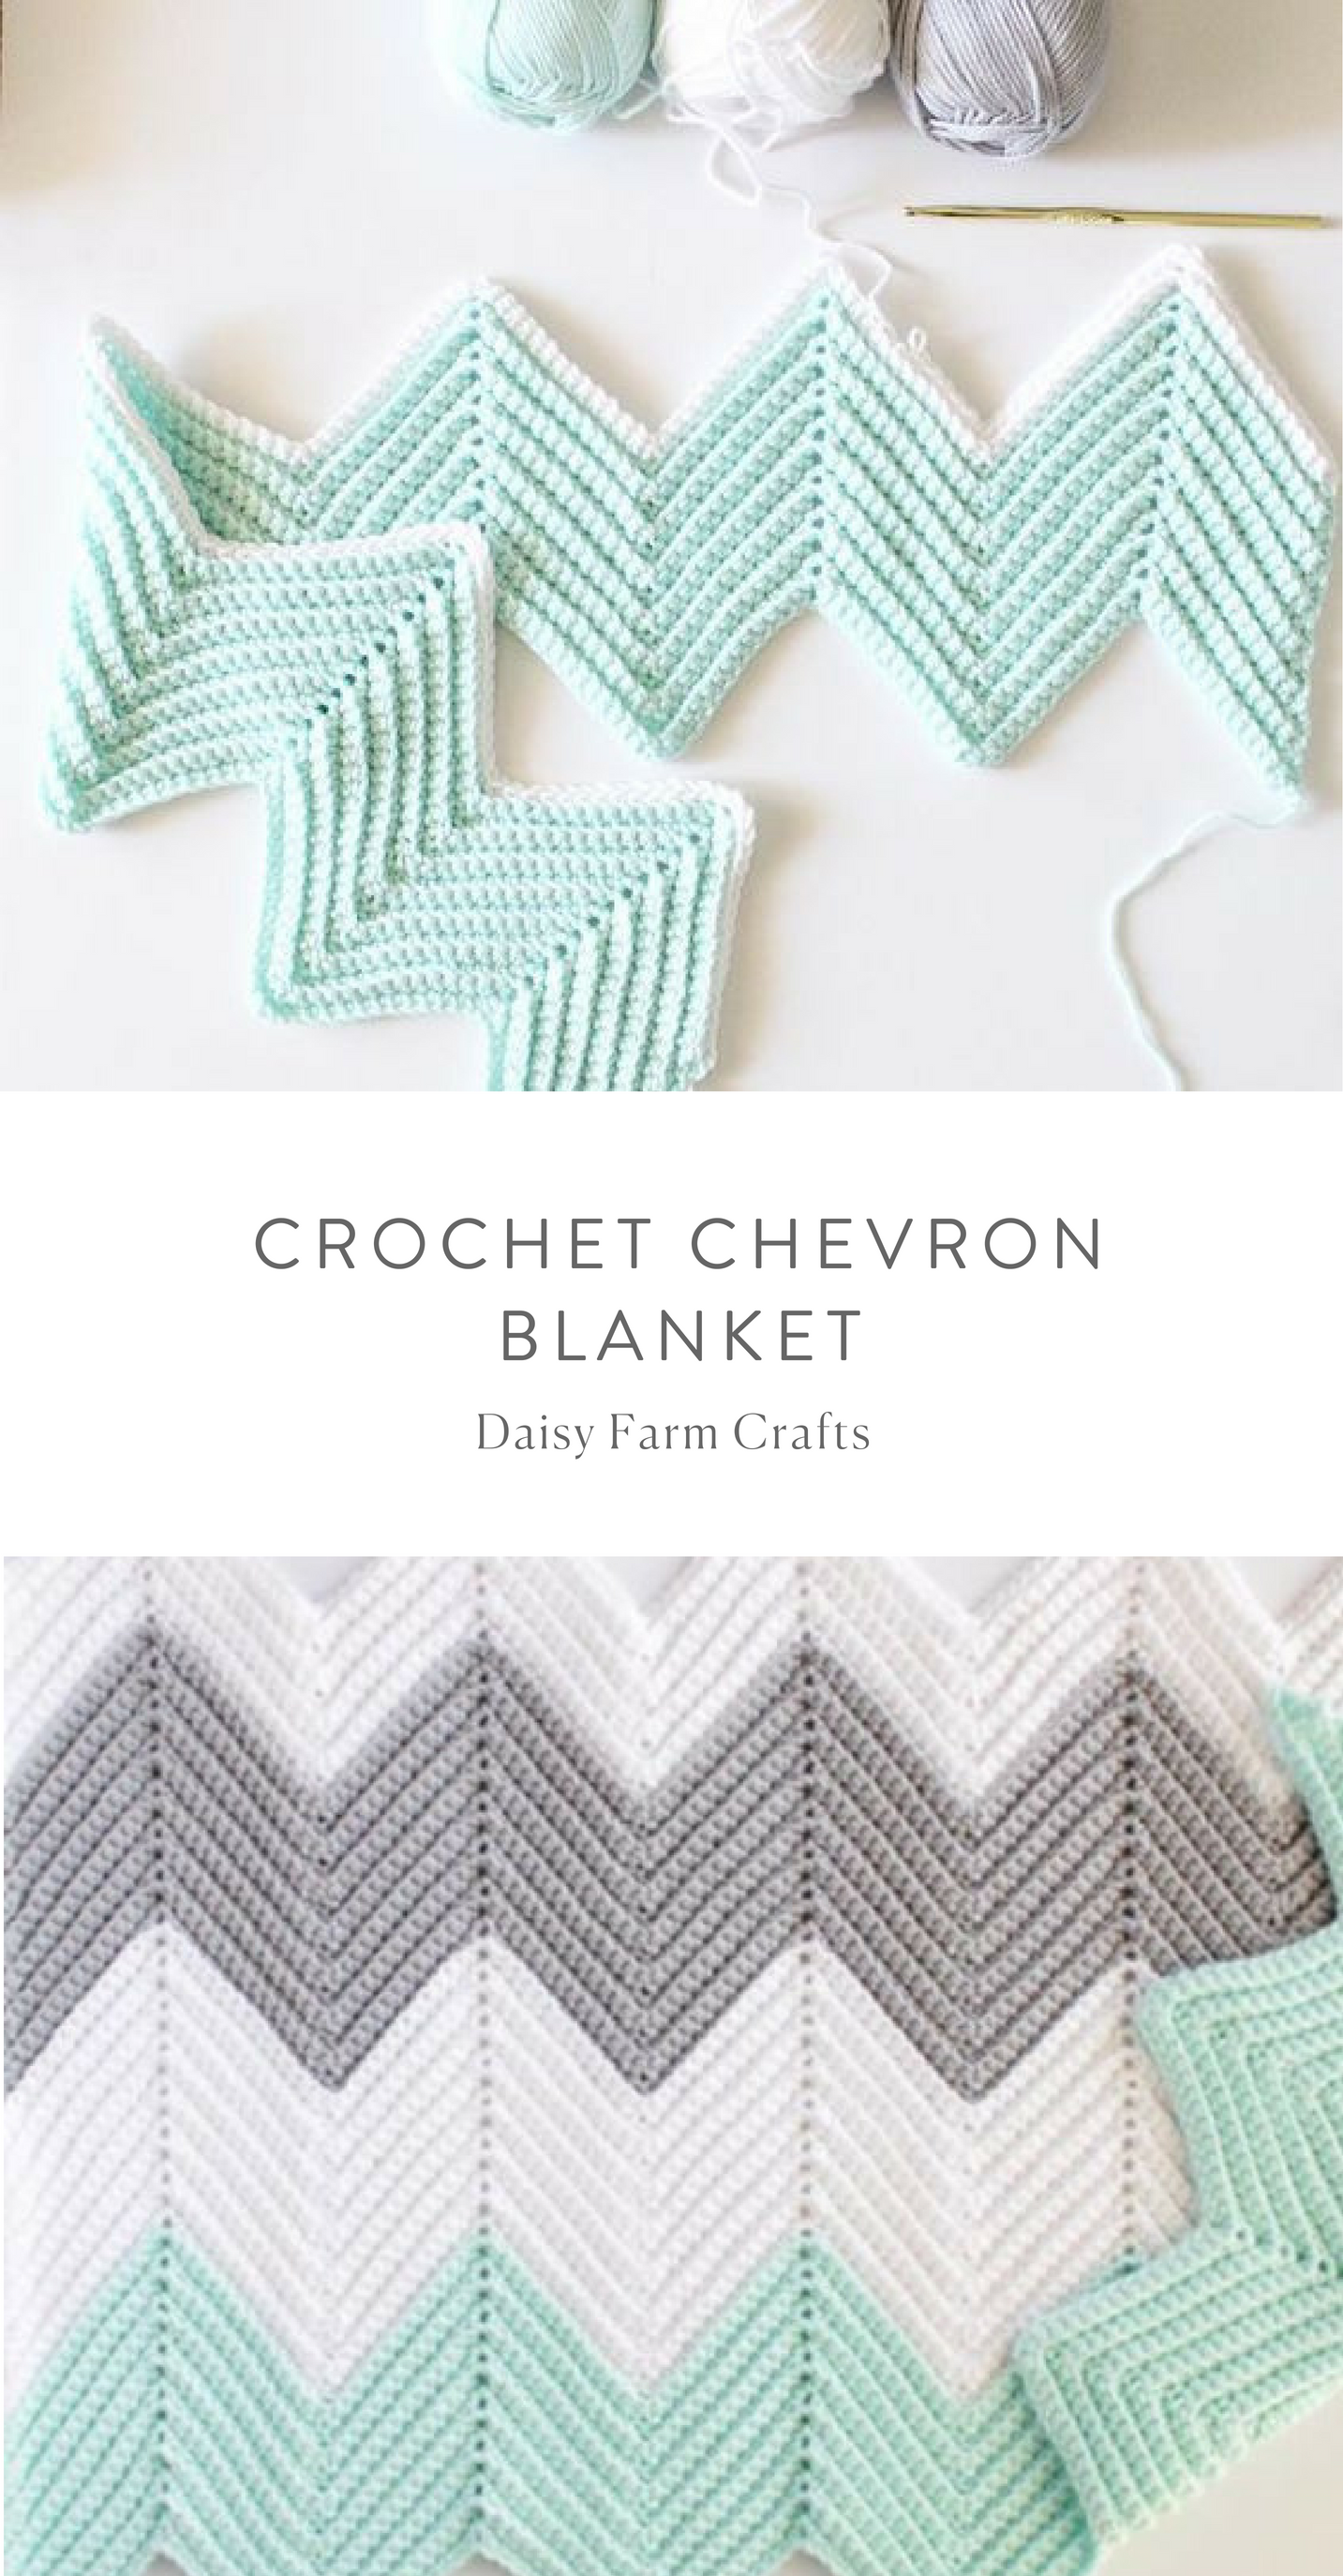 Free Pattern - Crochet Chevron Blanket #crochet